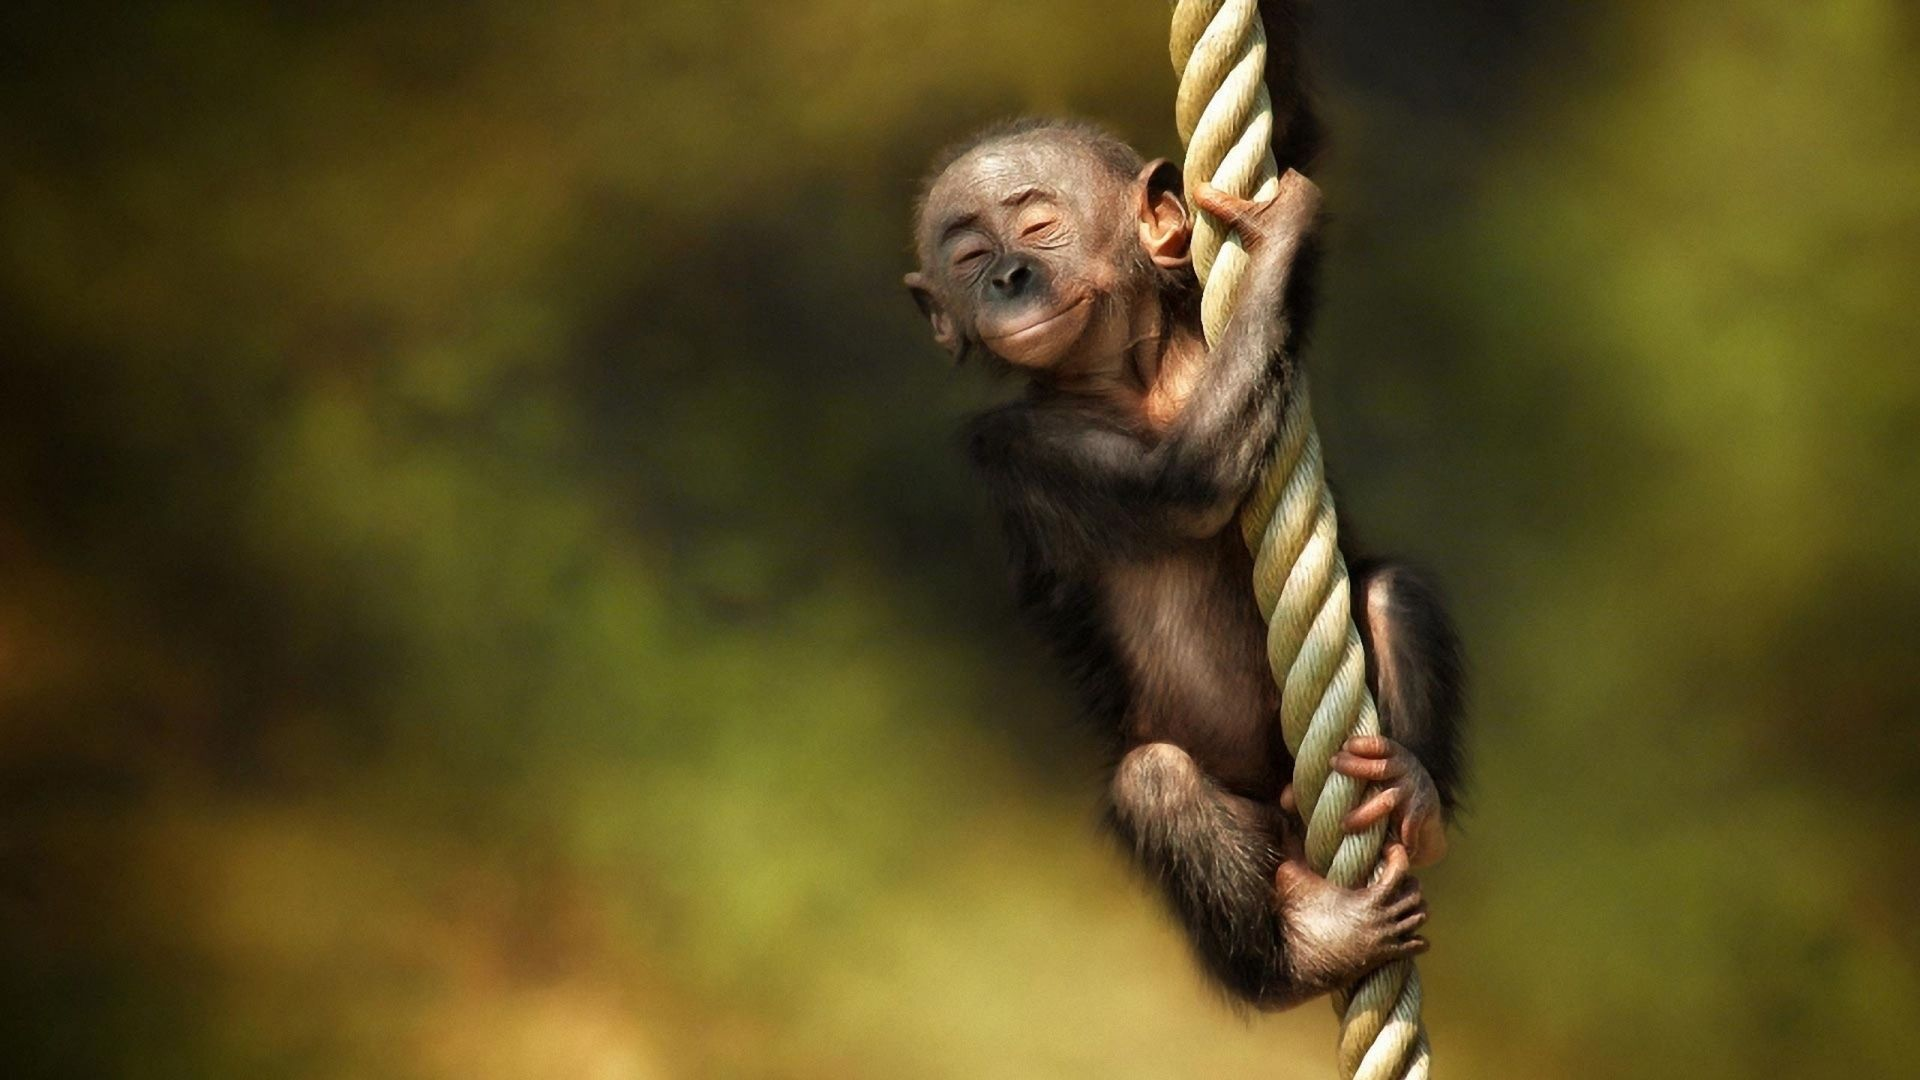 full hd p monkey wallpapers hd desktop backgrounds x